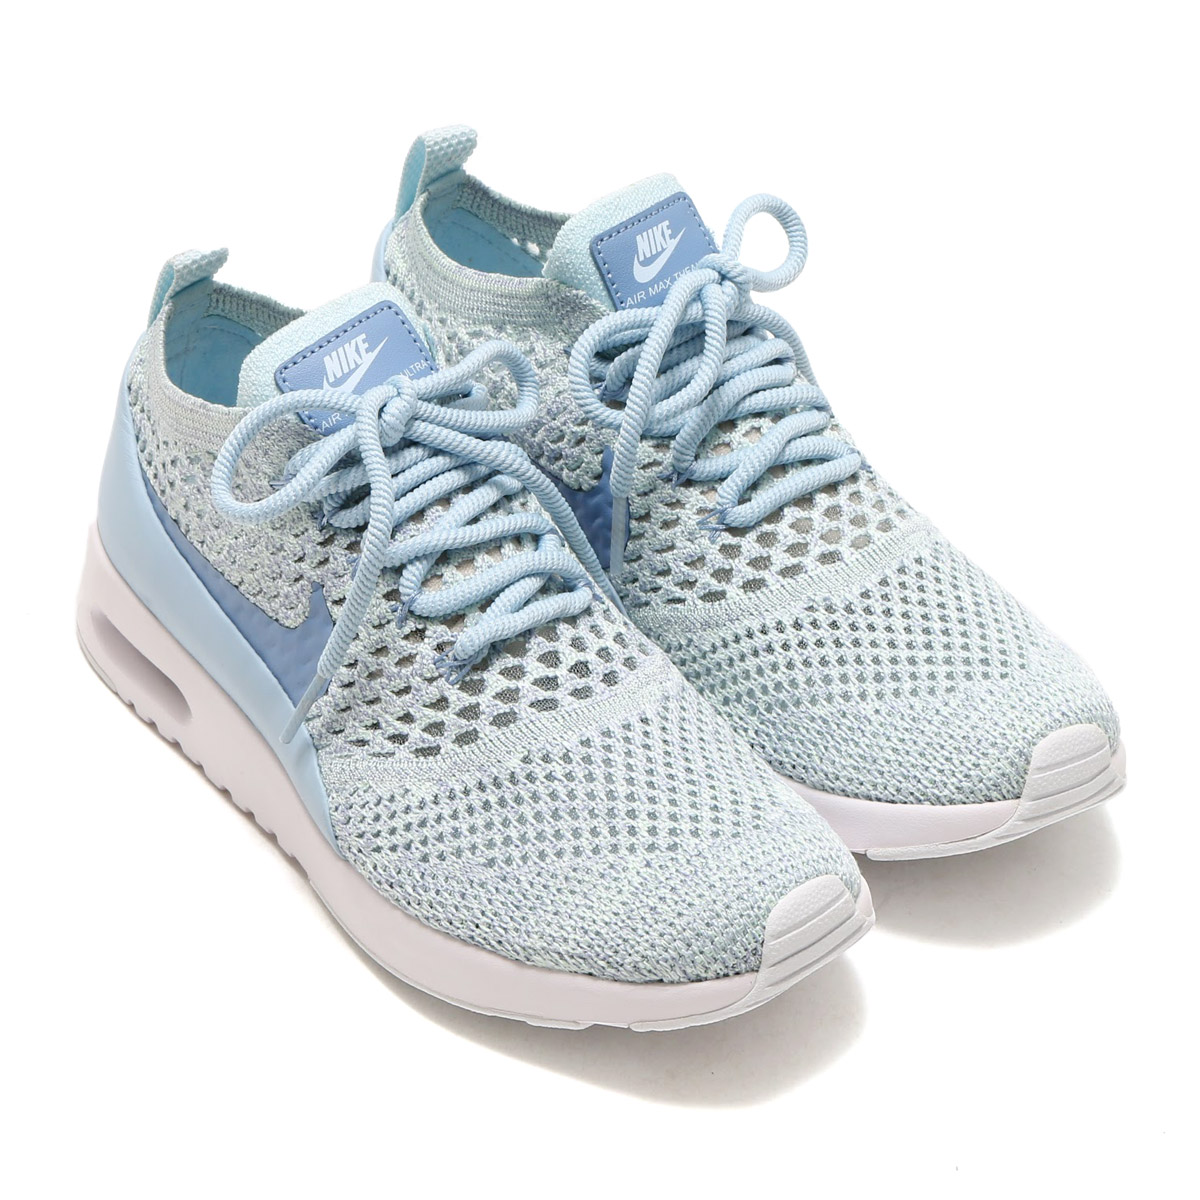 a38adce46a NIKE WMNS AIR MAX THEA ULTRA FK (Nike women Air Max Shea ultra fly knit ...